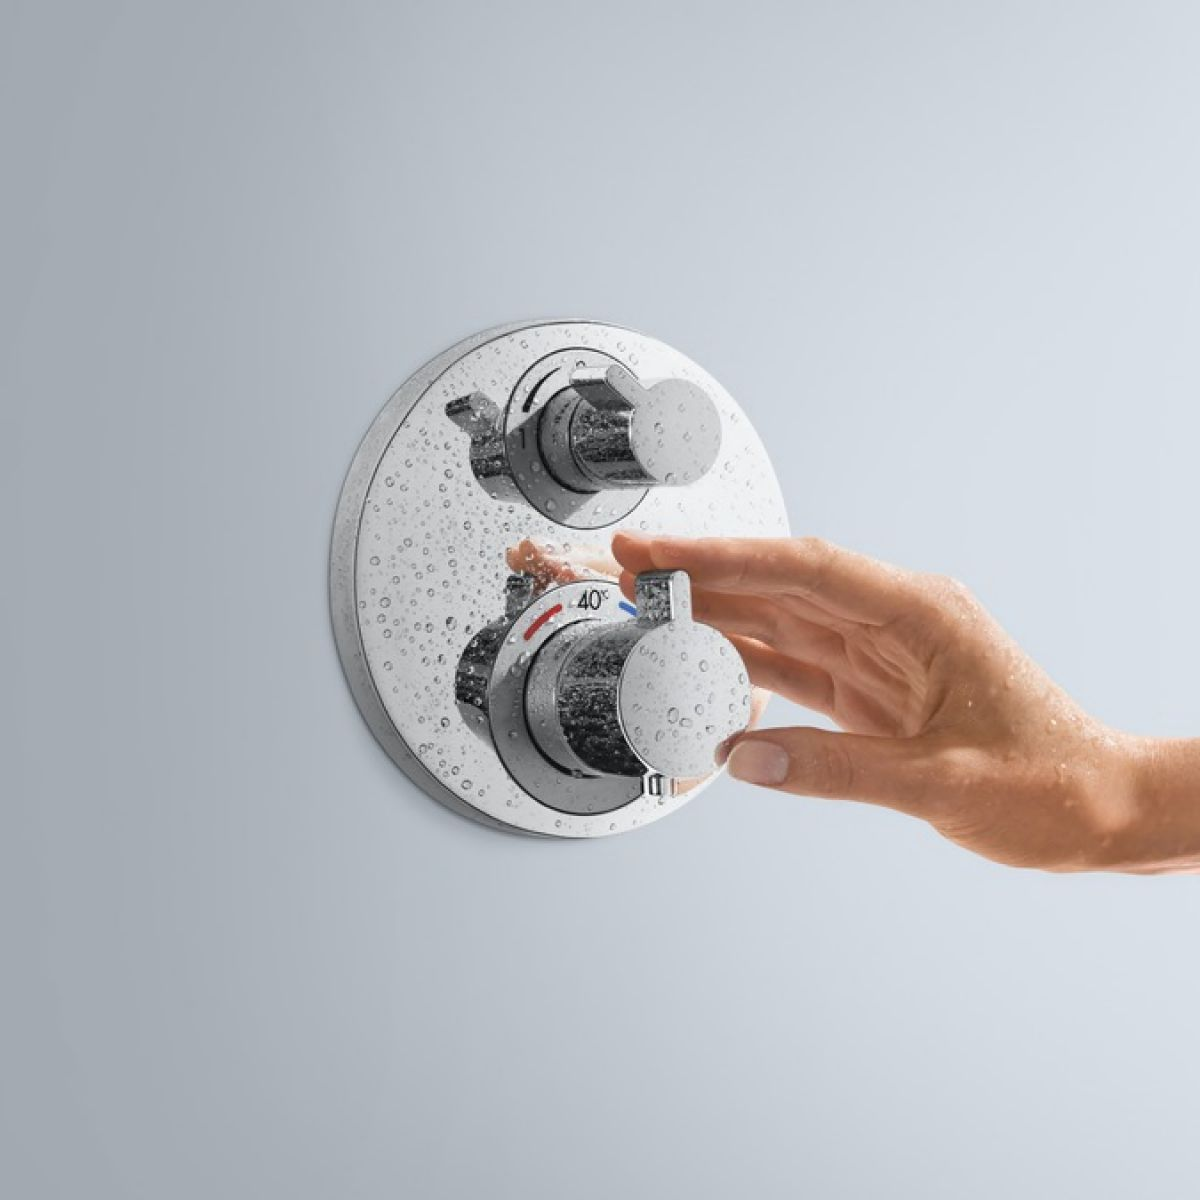 Hansgrohe Ecostat S Thermostatic Concealed Valve